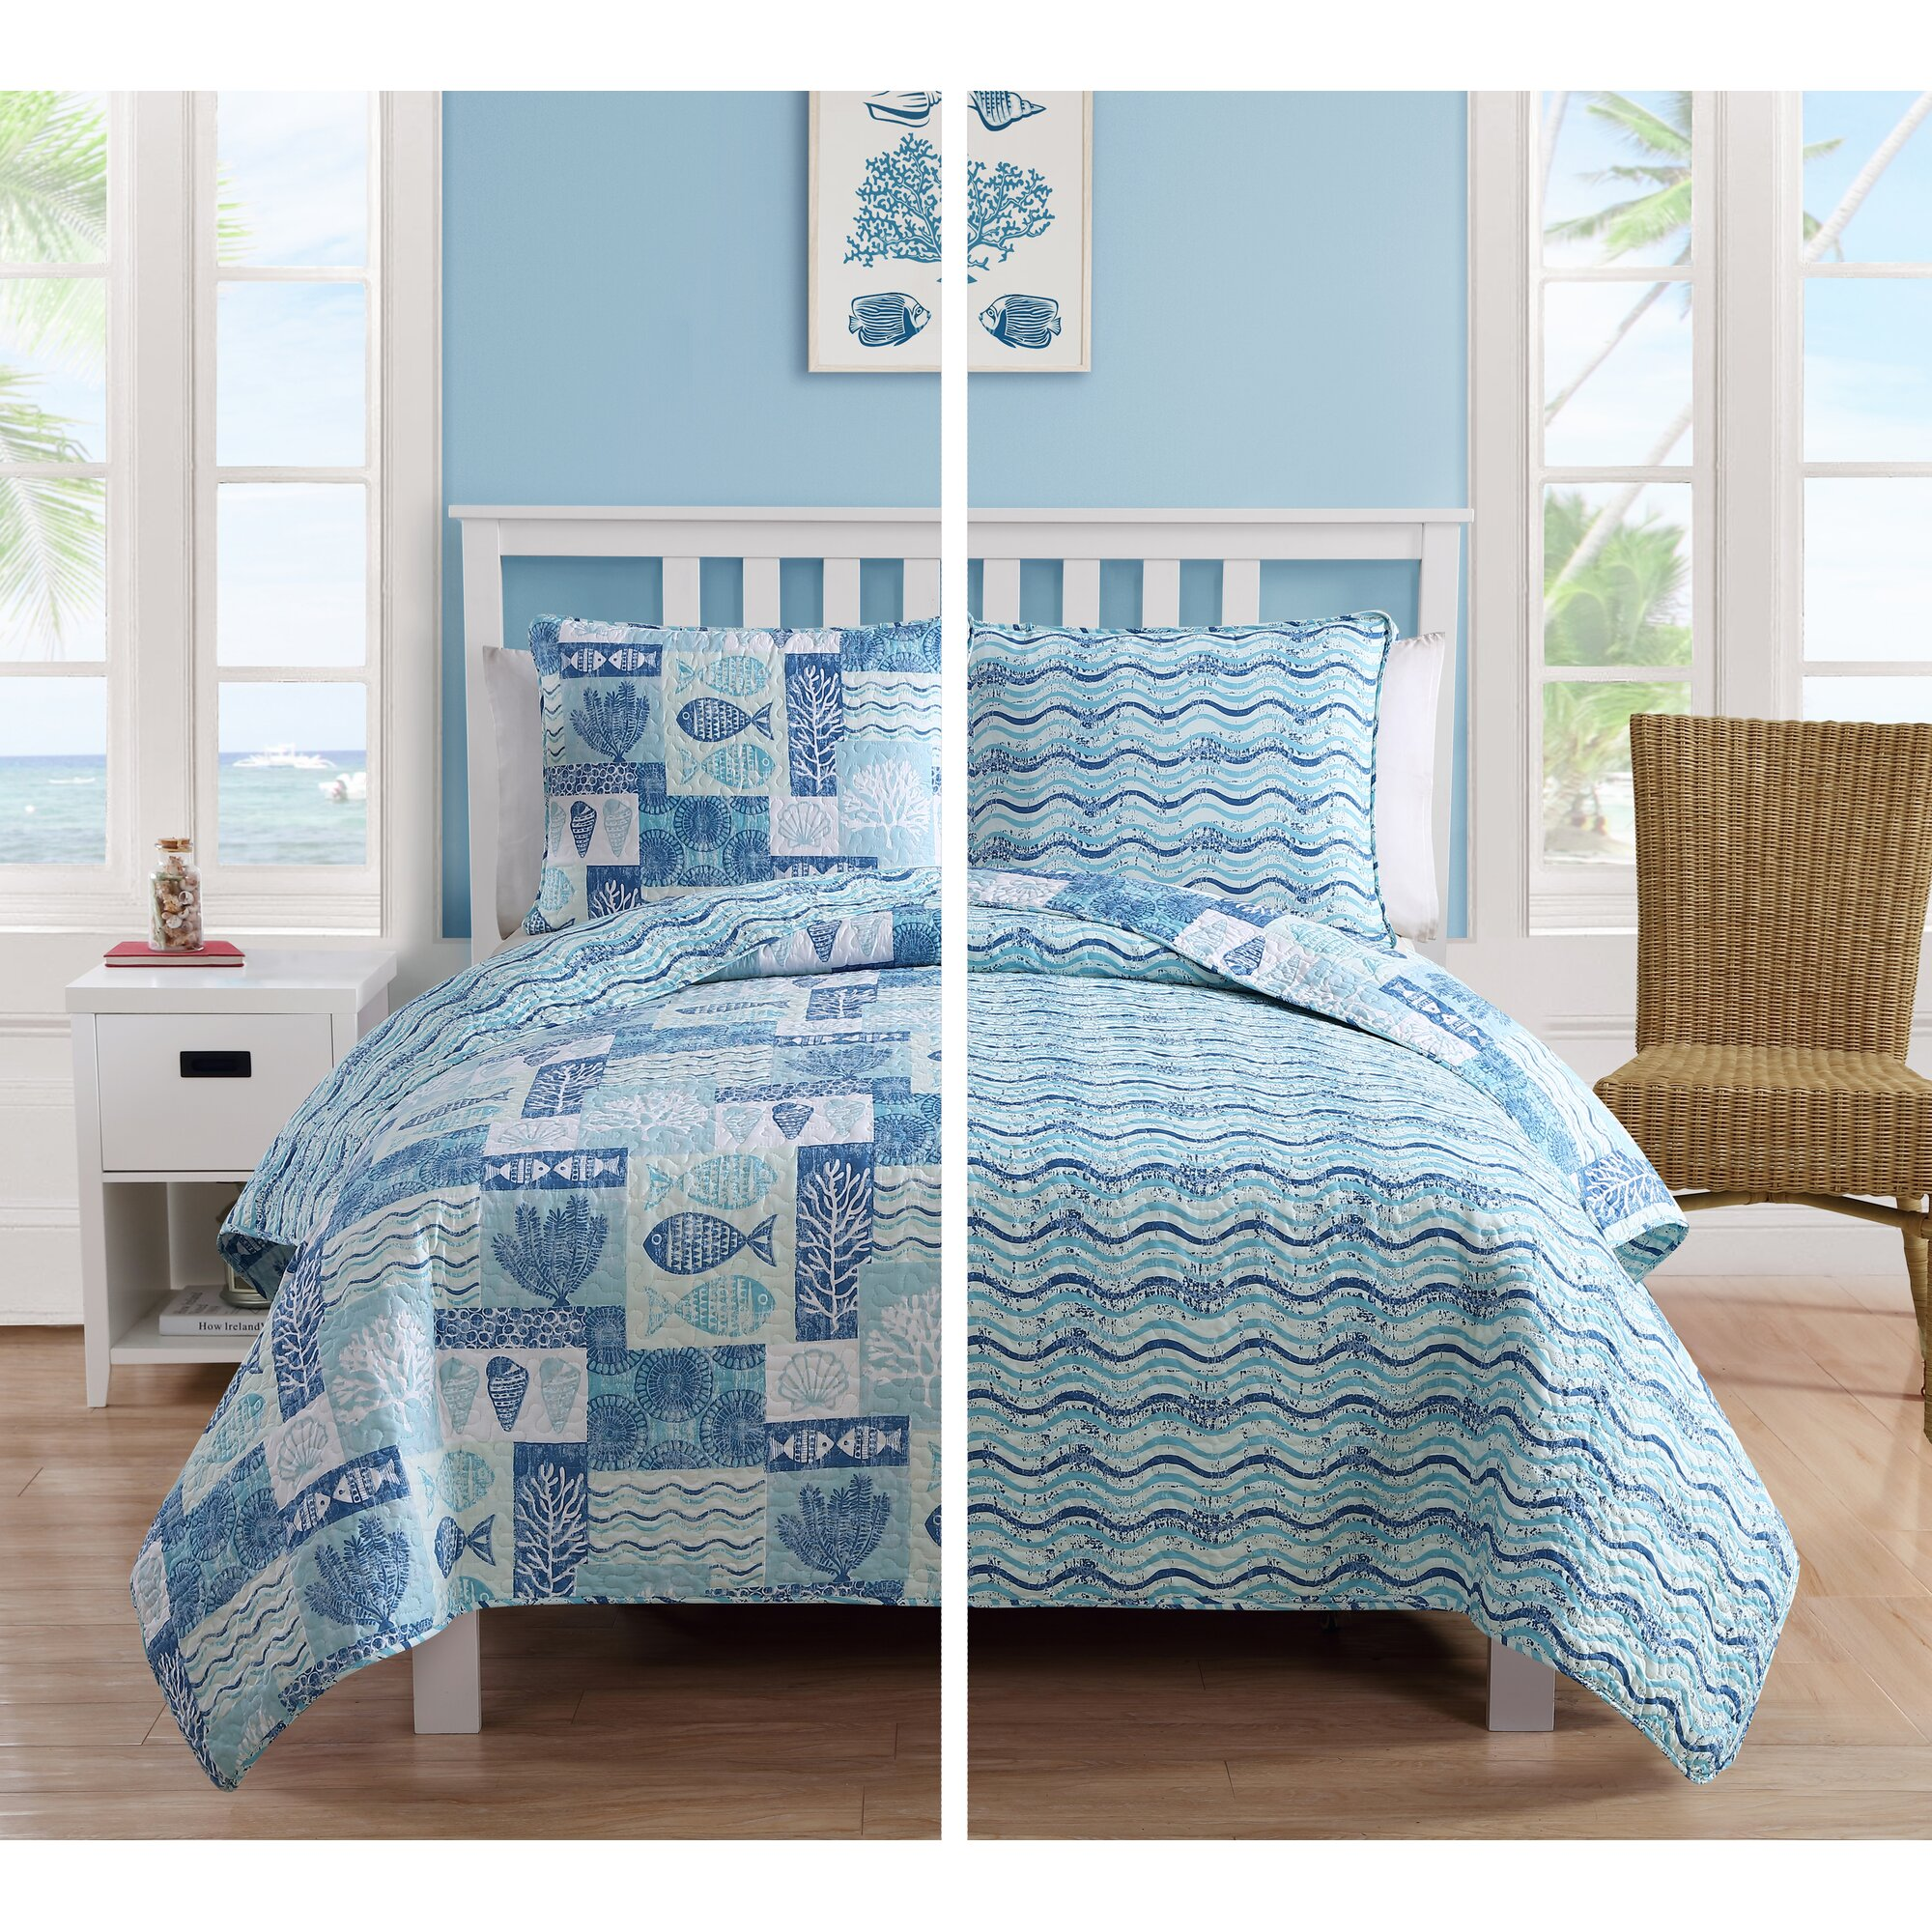 Beachcrest home hopewell 3 piece quilt set reviews wayfair for Quilted kitchen set